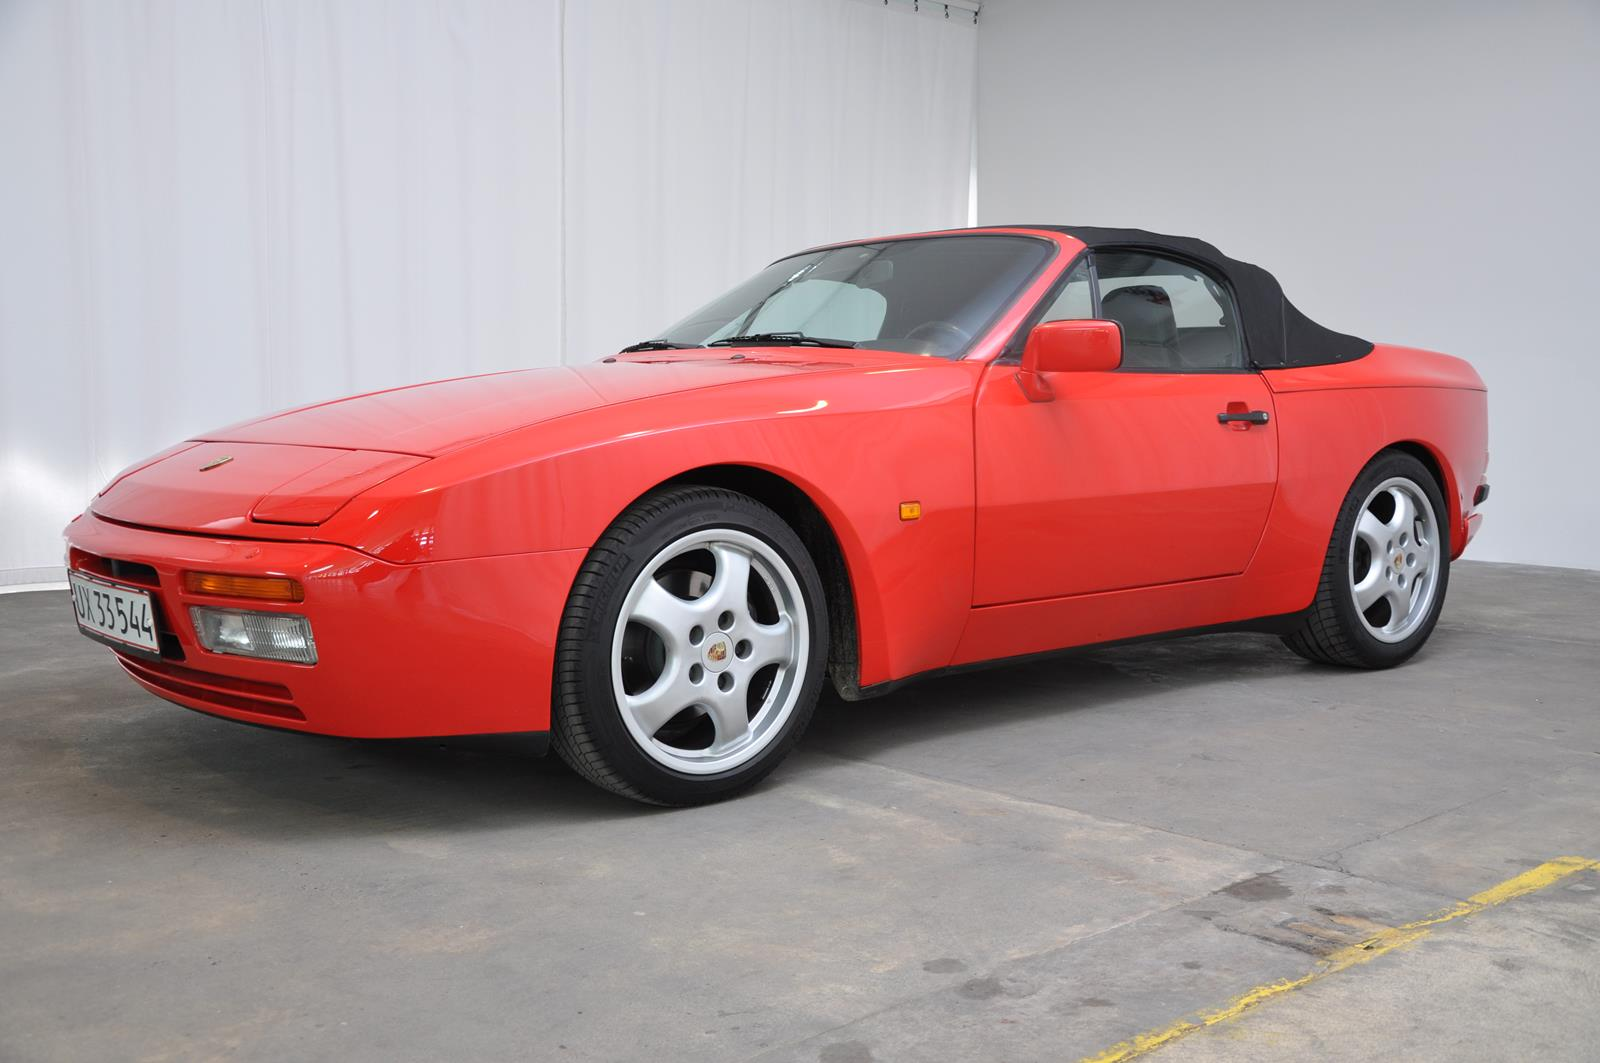 1991 porsche 944 s2 cabriolet classic motor sales. Black Bedroom Furniture Sets. Home Design Ideas